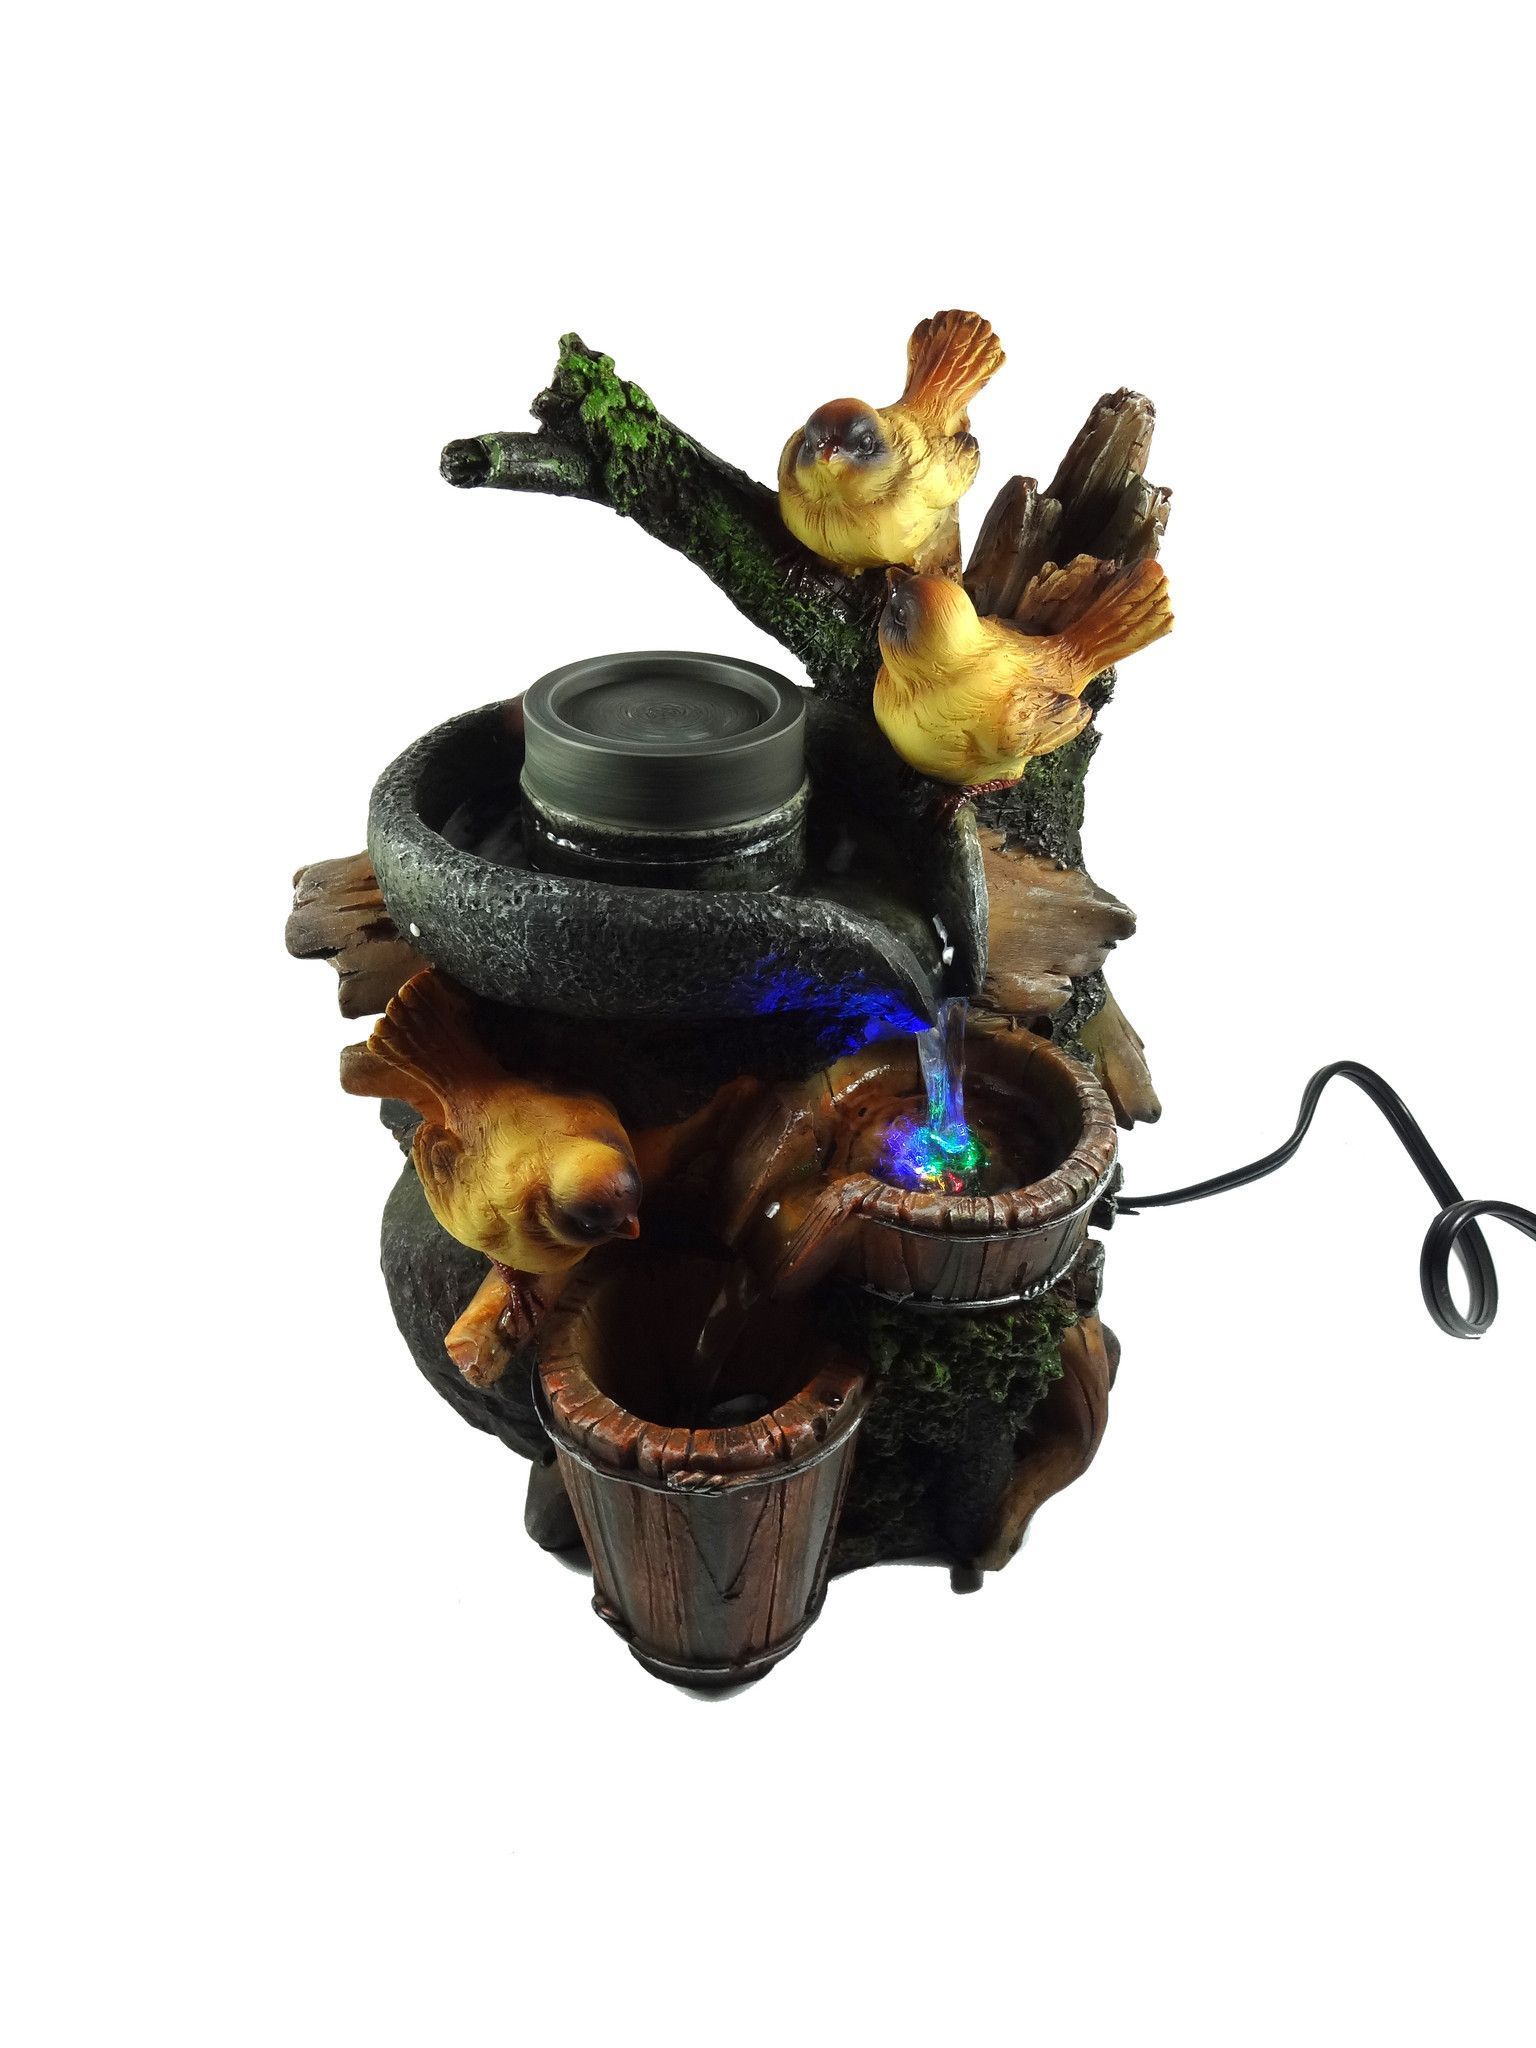 Tabletop fountain with led lights, Birds on a branch near